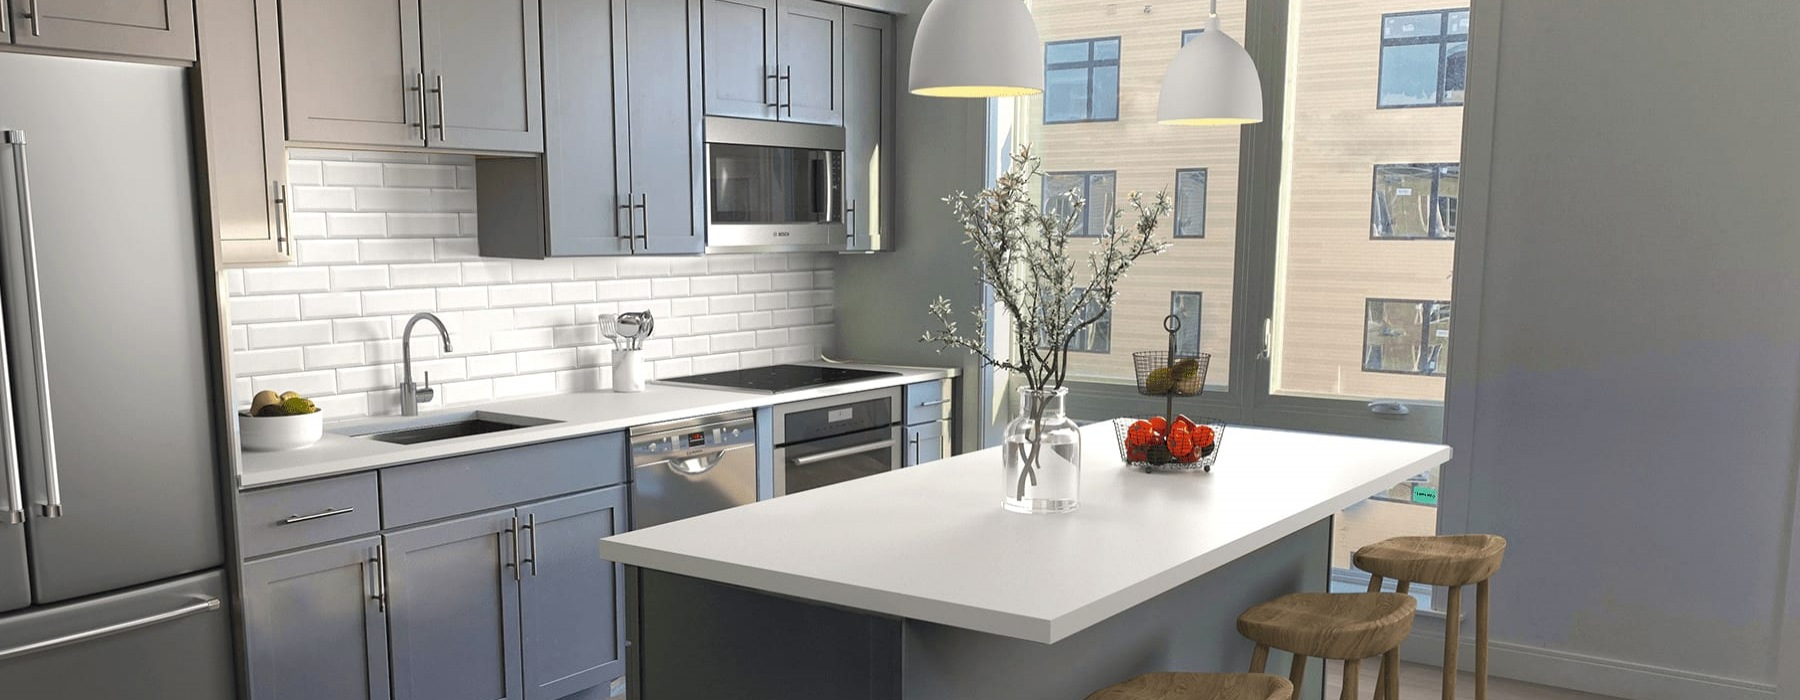 rendering of spacious kitchen that includes an island, ample counter-space and plenty of natural lighting through large windows